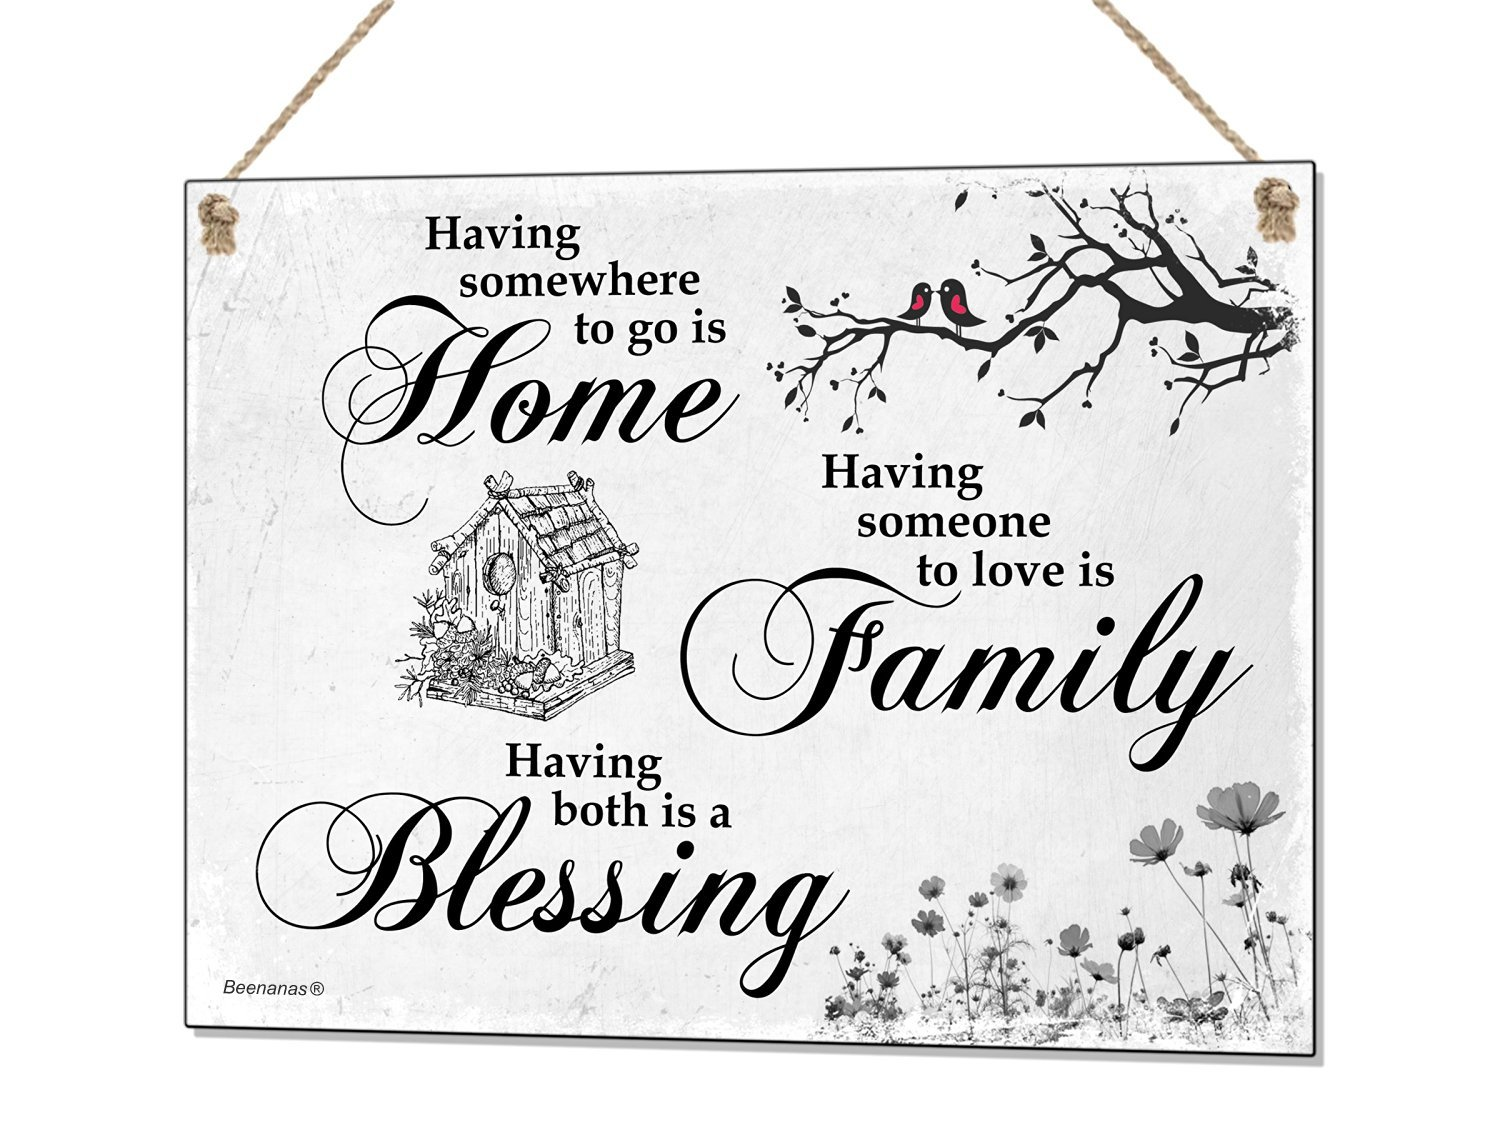 Metal Signs Home Decor family established signs last name established sign anniversary gifts personalized gift home decor wedding established sign metal sign Home Family Blessing Metal Sign Tin Plaque Quote Wall Art Decor